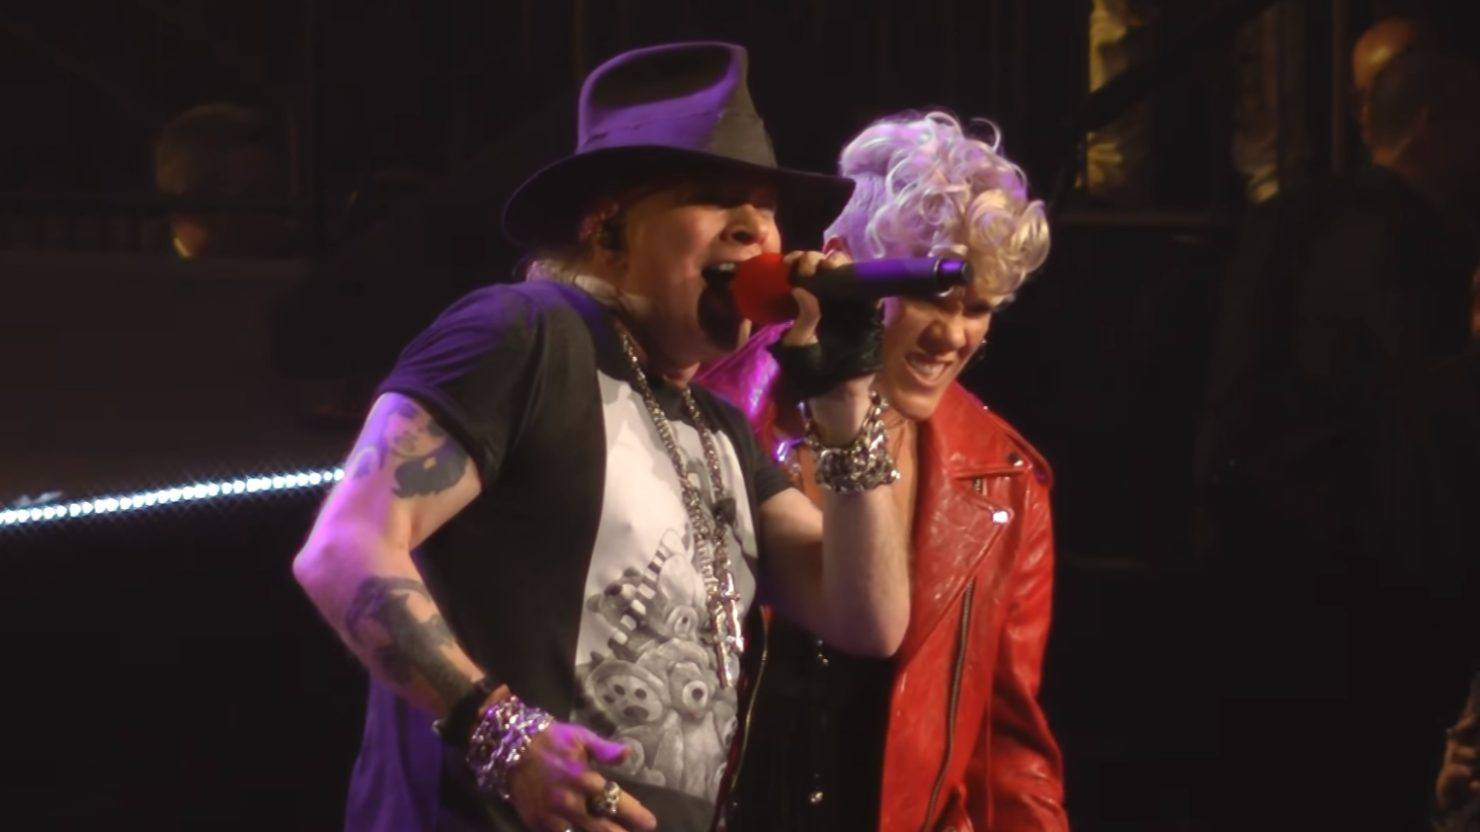 P Nk Joins Guns N Roses At Madison Square Garden